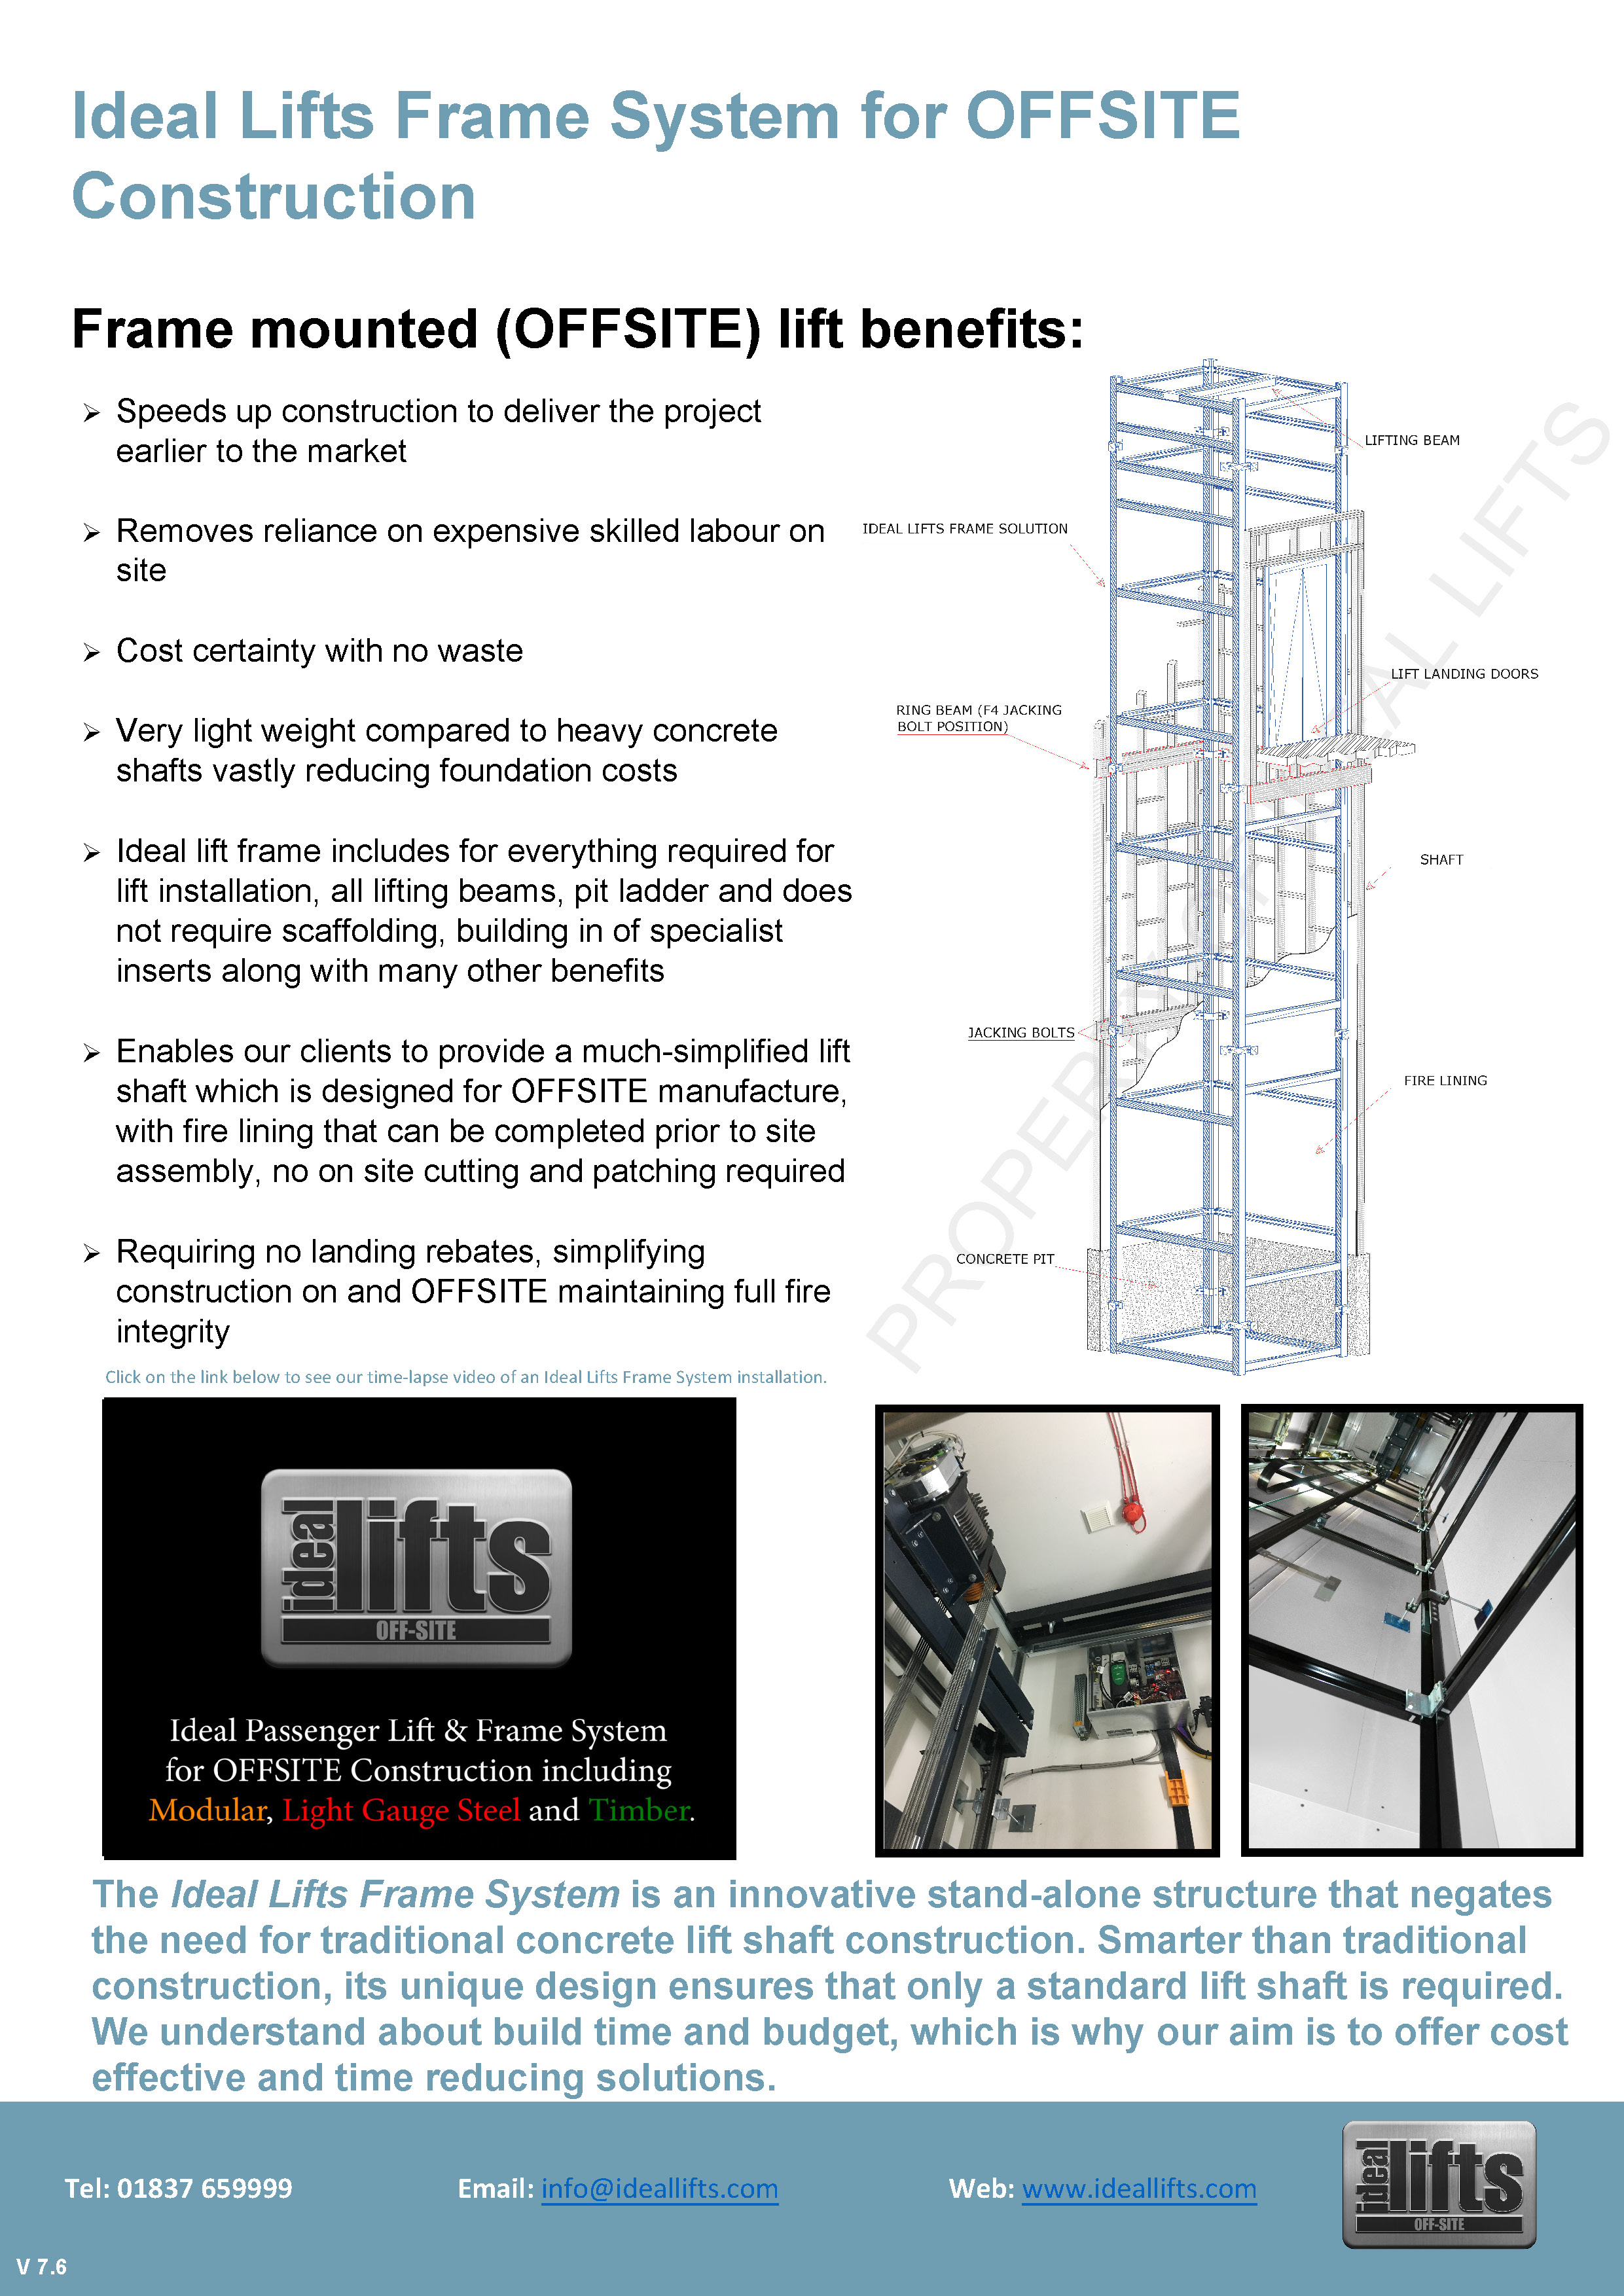 Passenger lift installations with the Ideal Lifts Frame System for OFFSITE / MMC, timber frame buildings, modular buildings, light gauge steel buildings